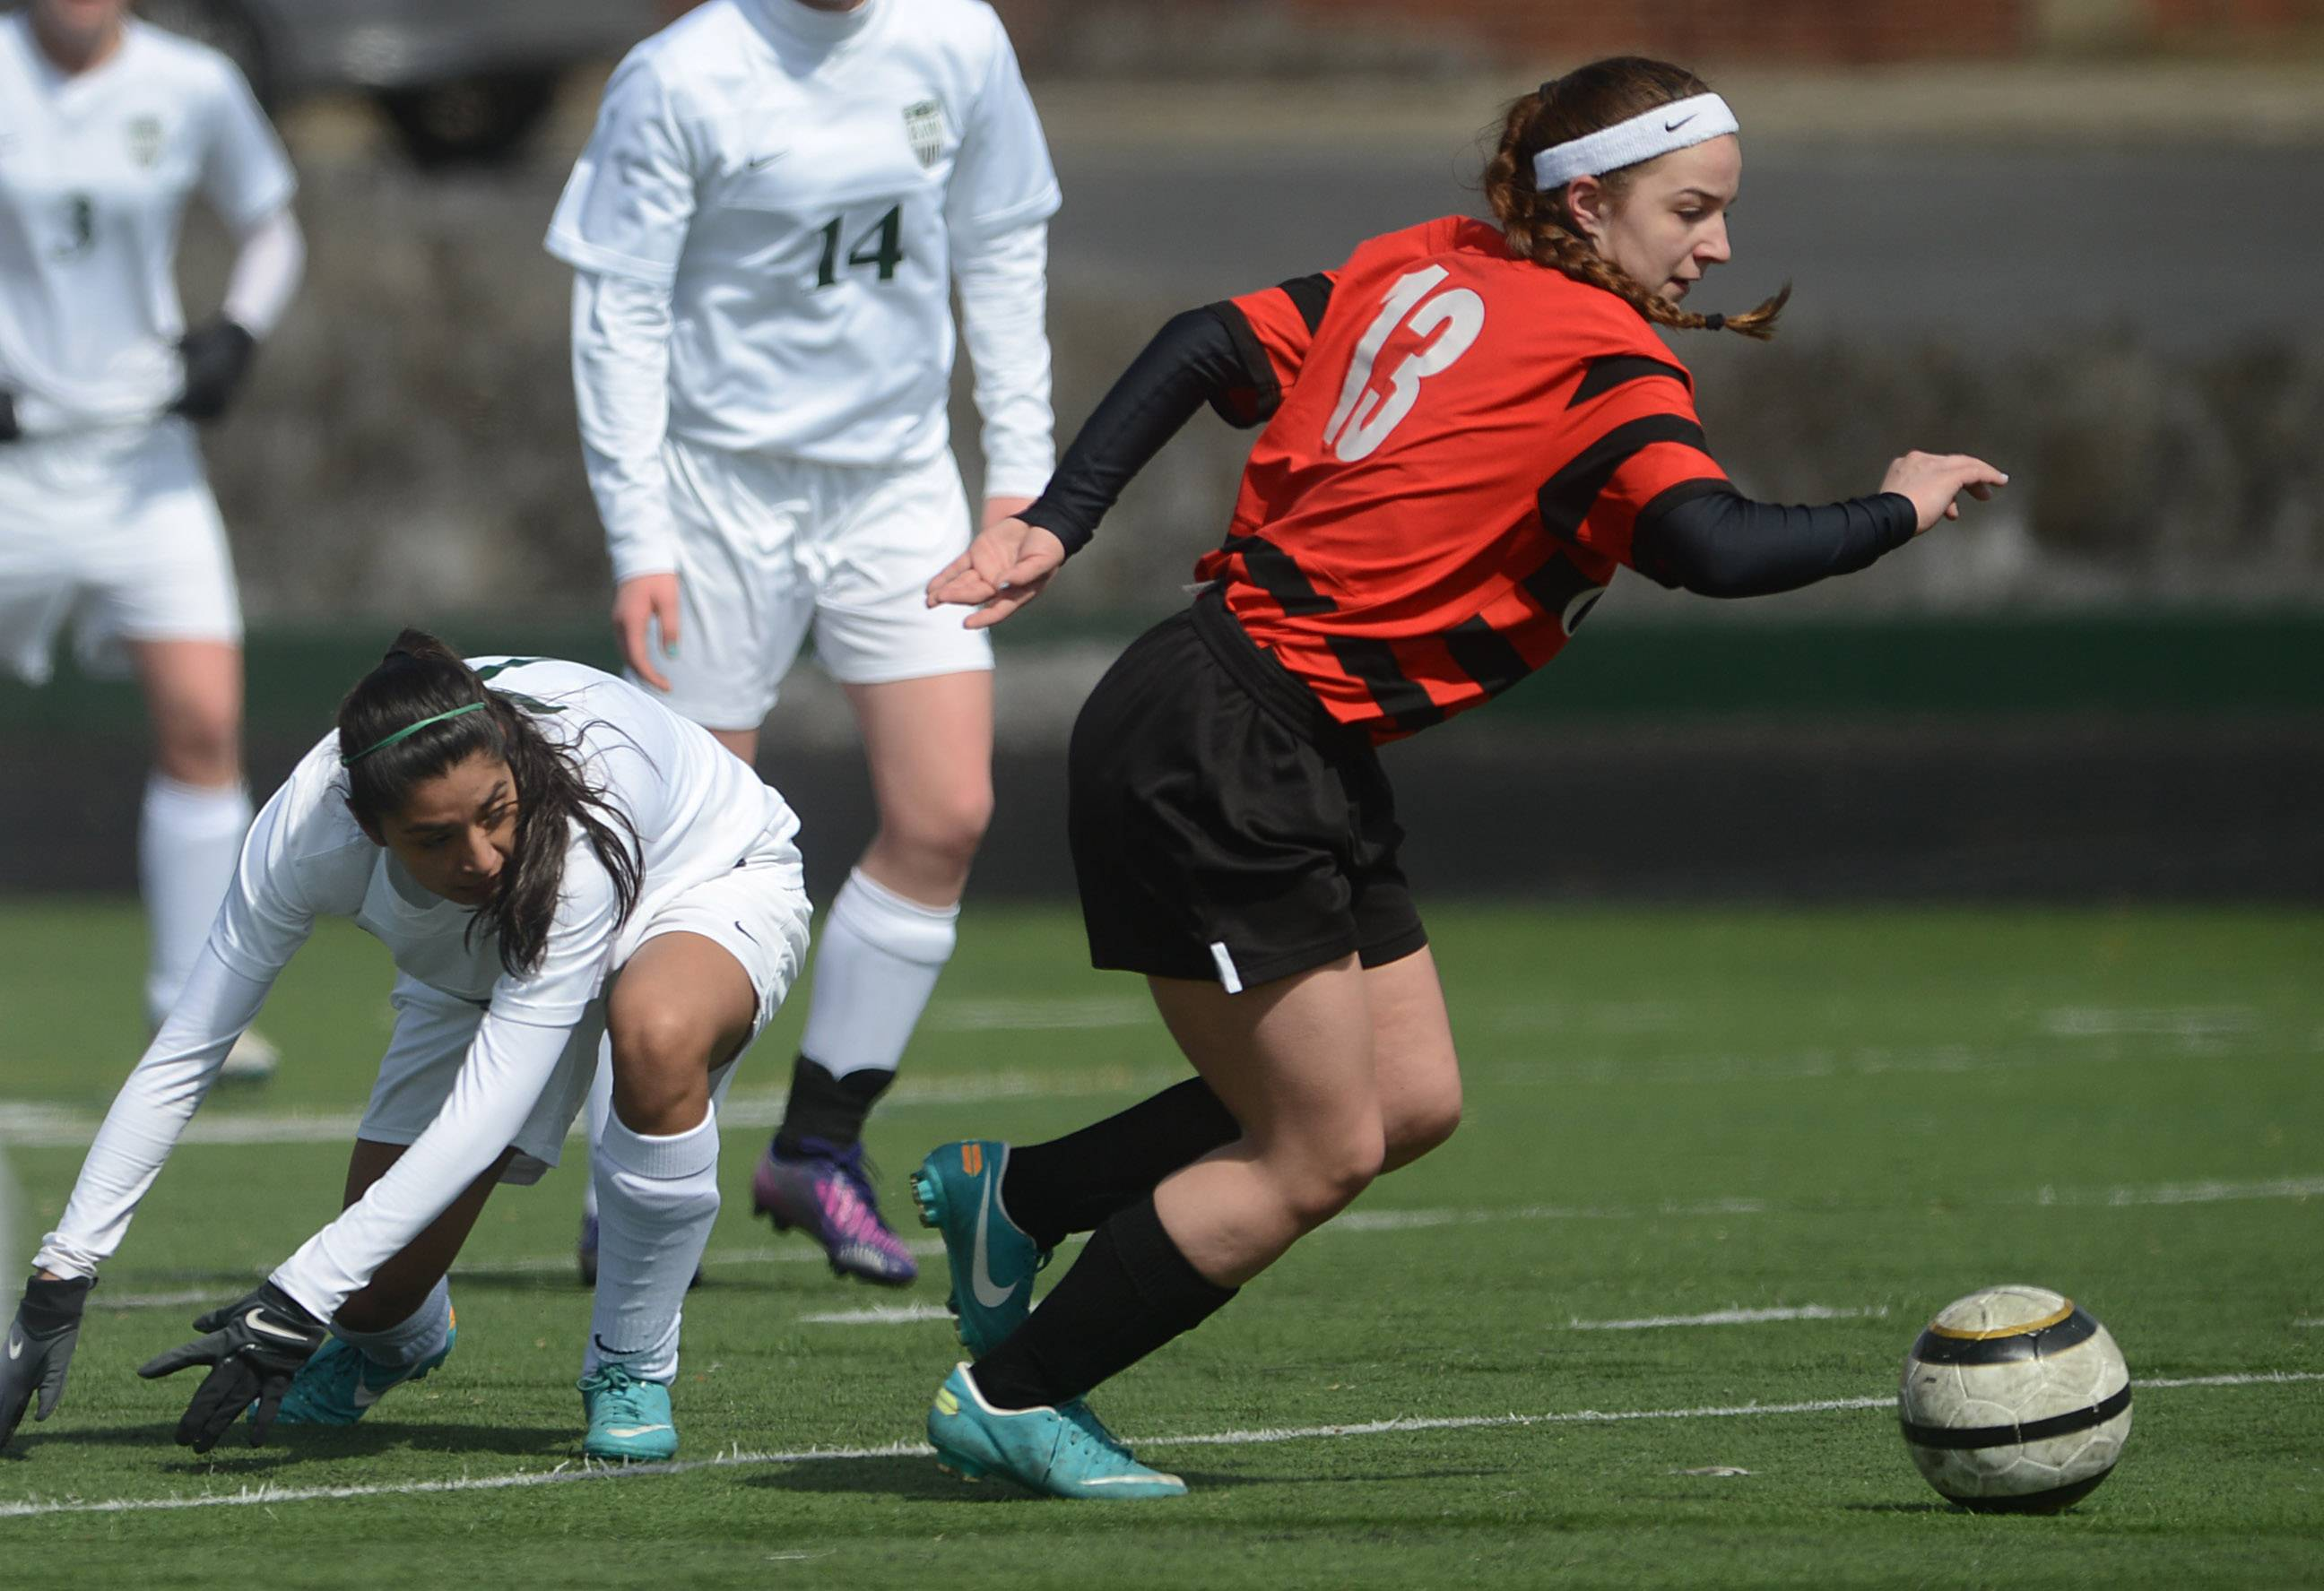 Grant's Jenna Pecorini (13) gets the upper hand on Grayslake Central's Karleen Gomez during Tuesday's soccer game in Grayslake.